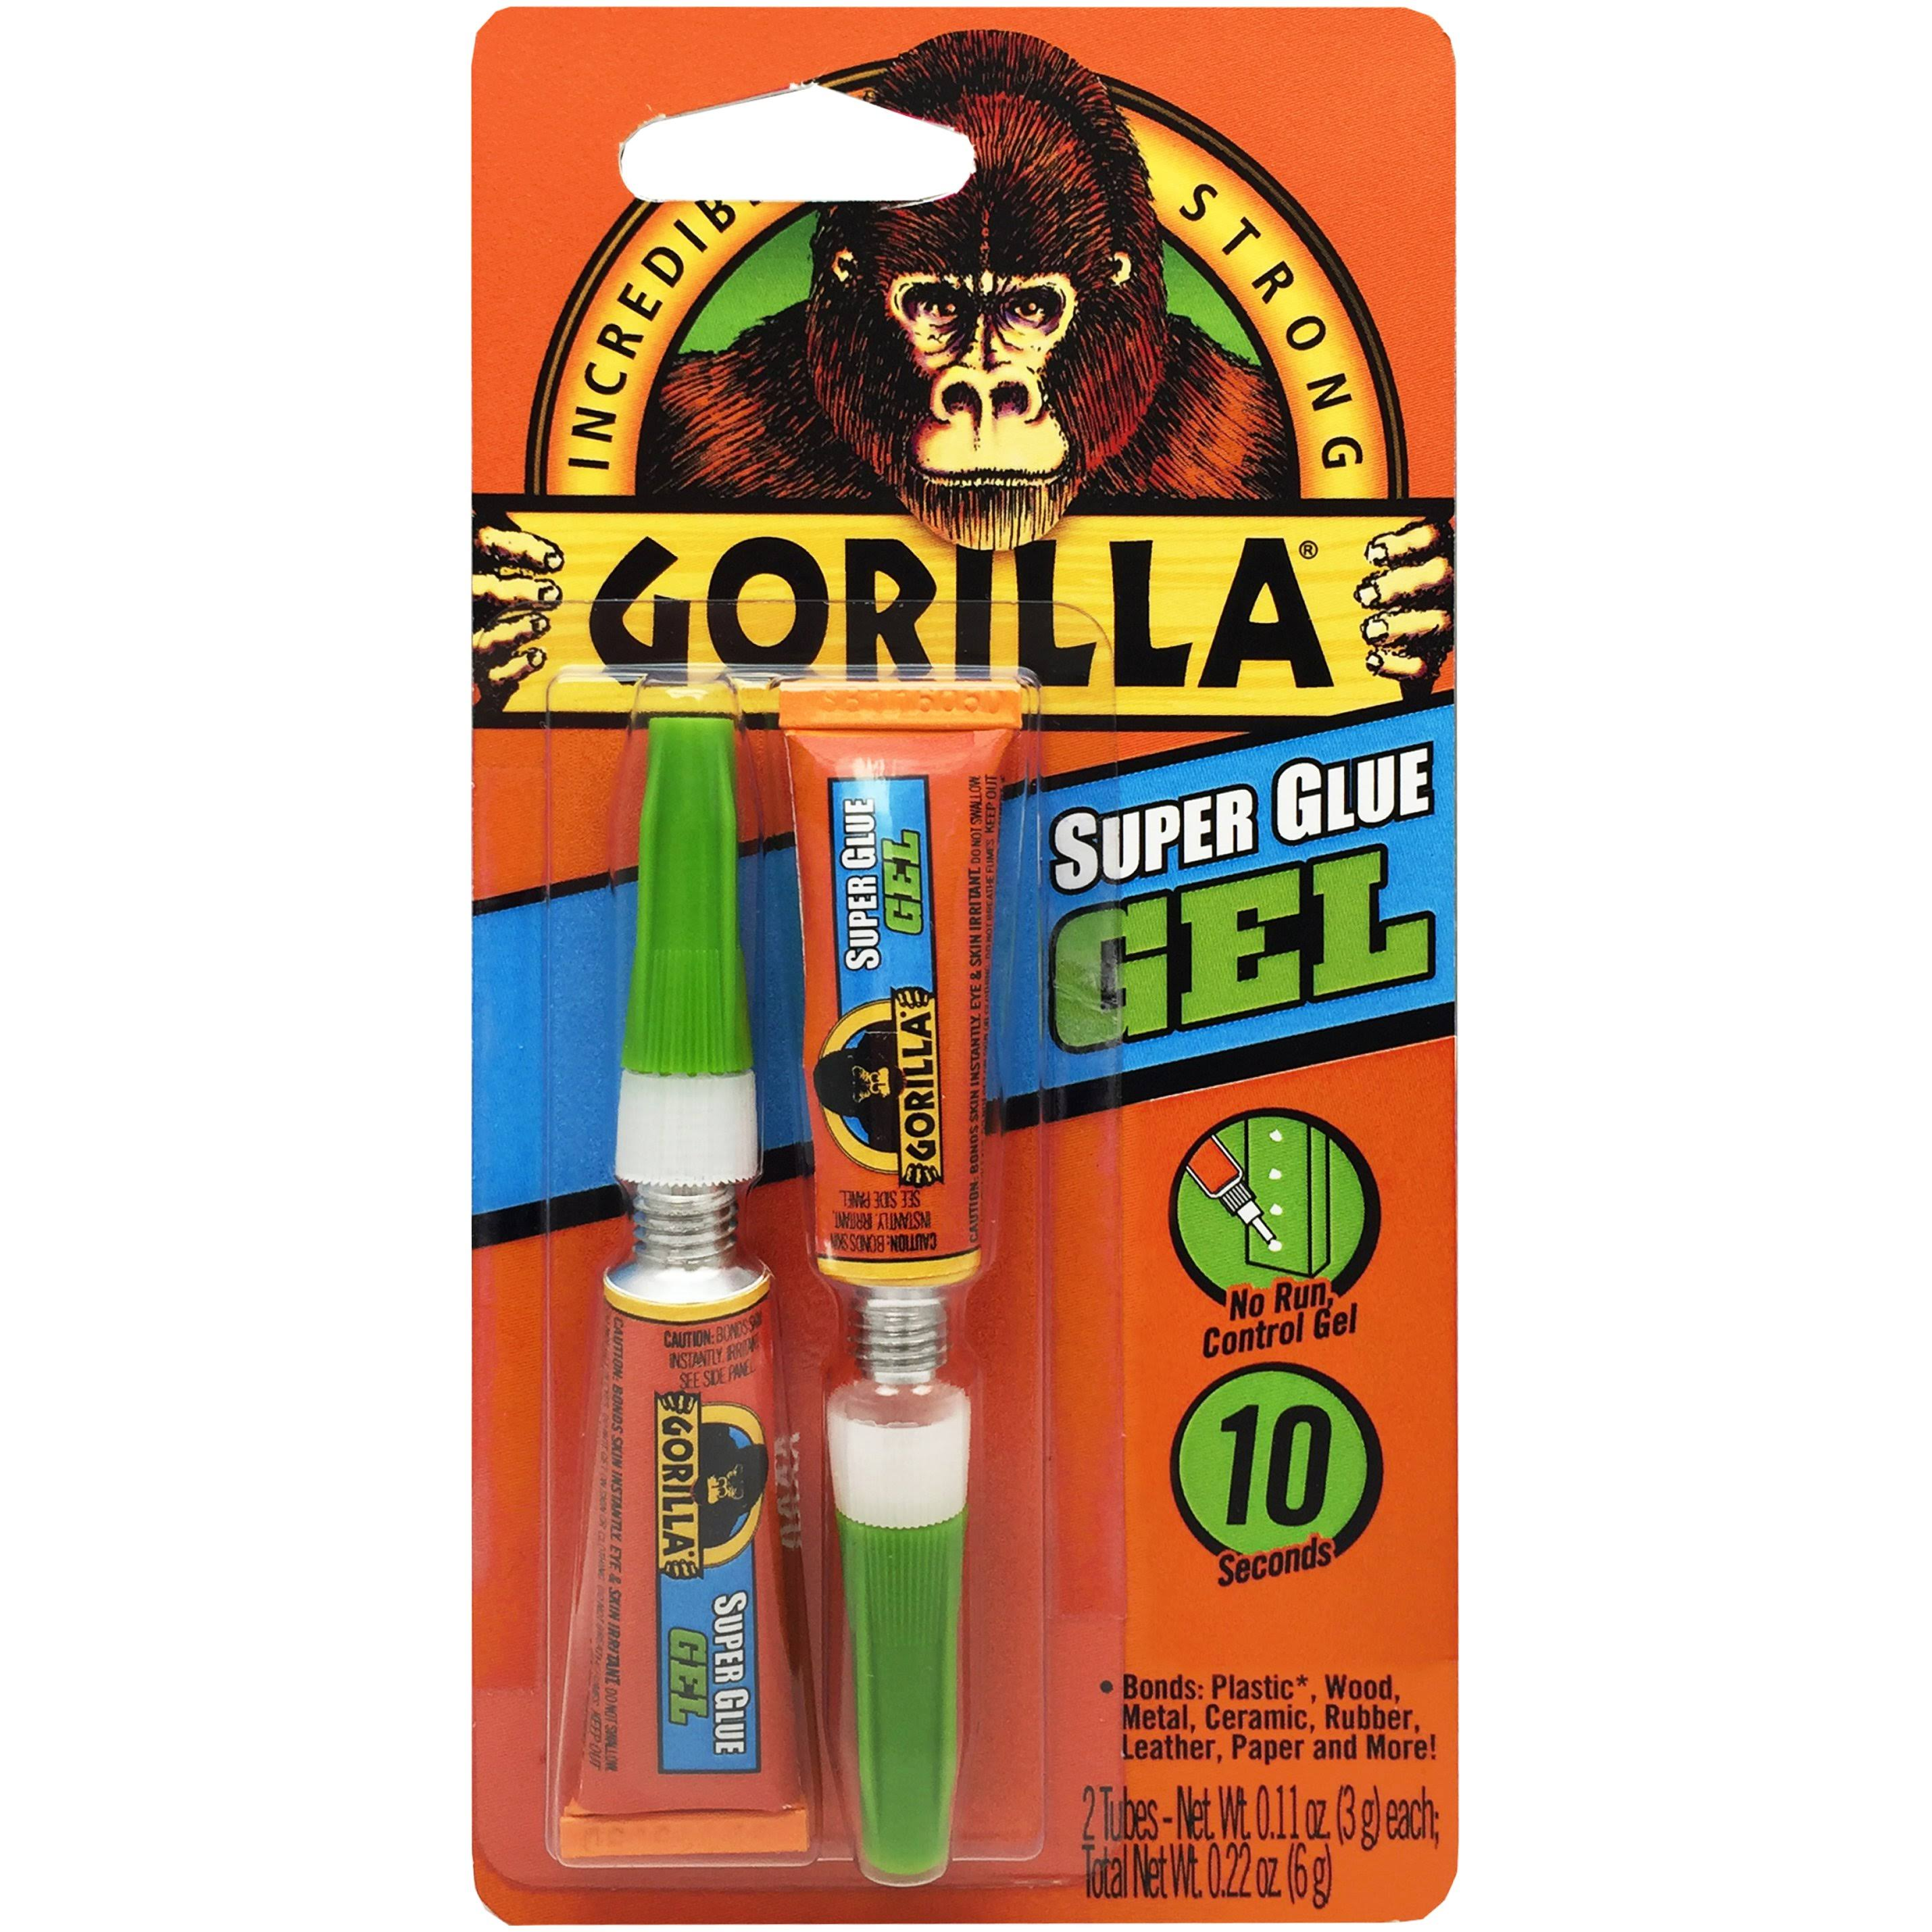 Gorilla 7820001 Super Glue Gel - 6g